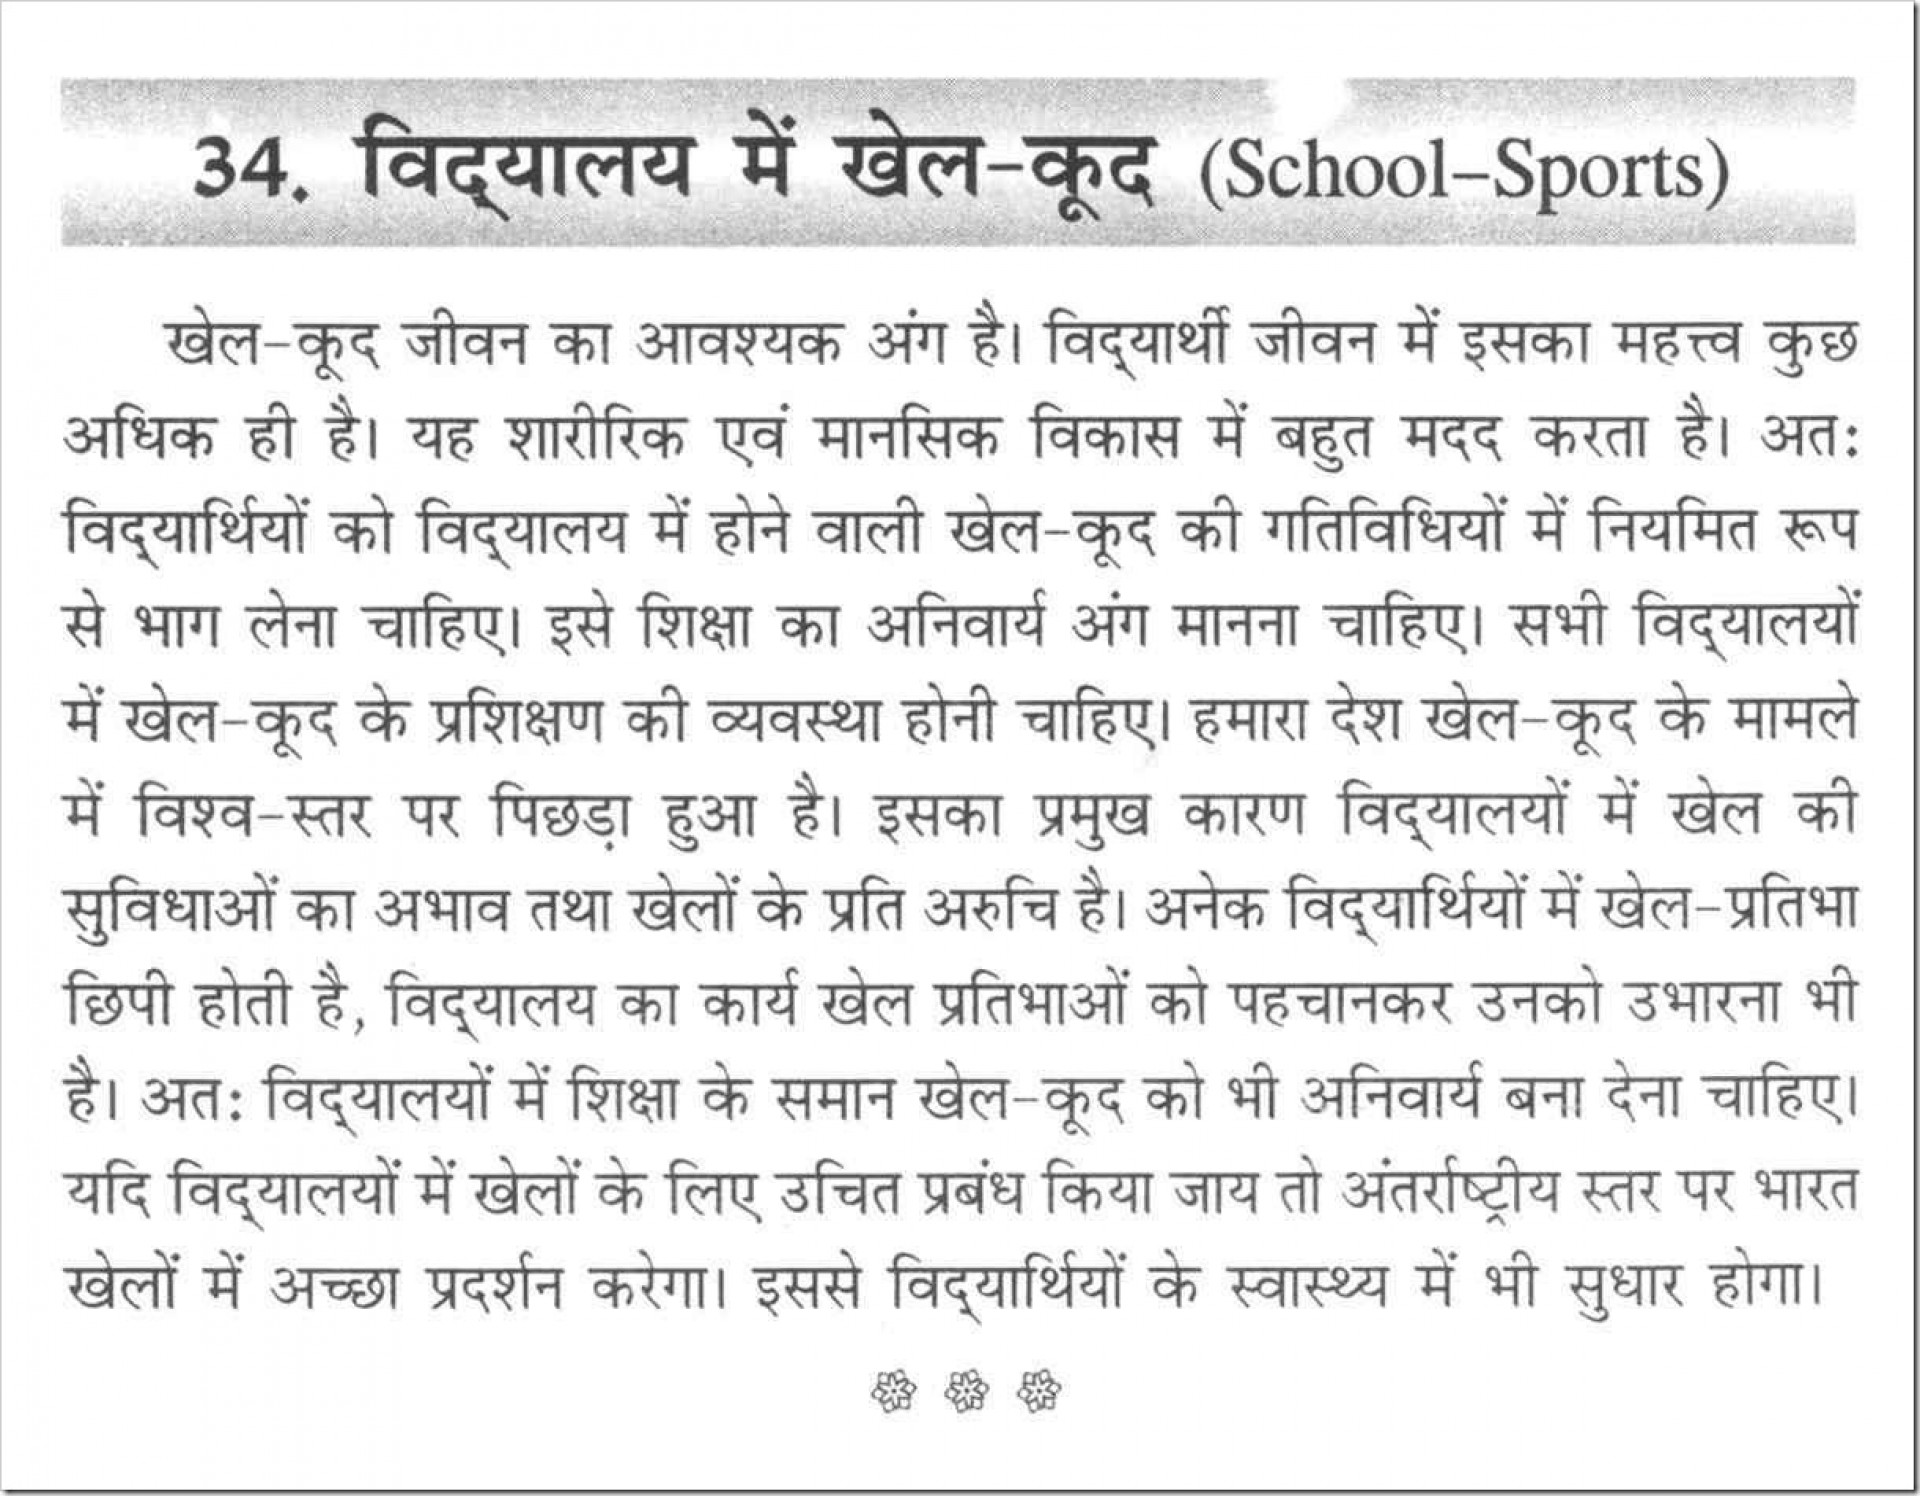 015 Why Is It Important To Vote Essay Contest Example The Importance Of Voting Election Commission Responsibility Aa133 School For Class Library Life In Marathi Uniform Hindi Sanskrit Top 1920